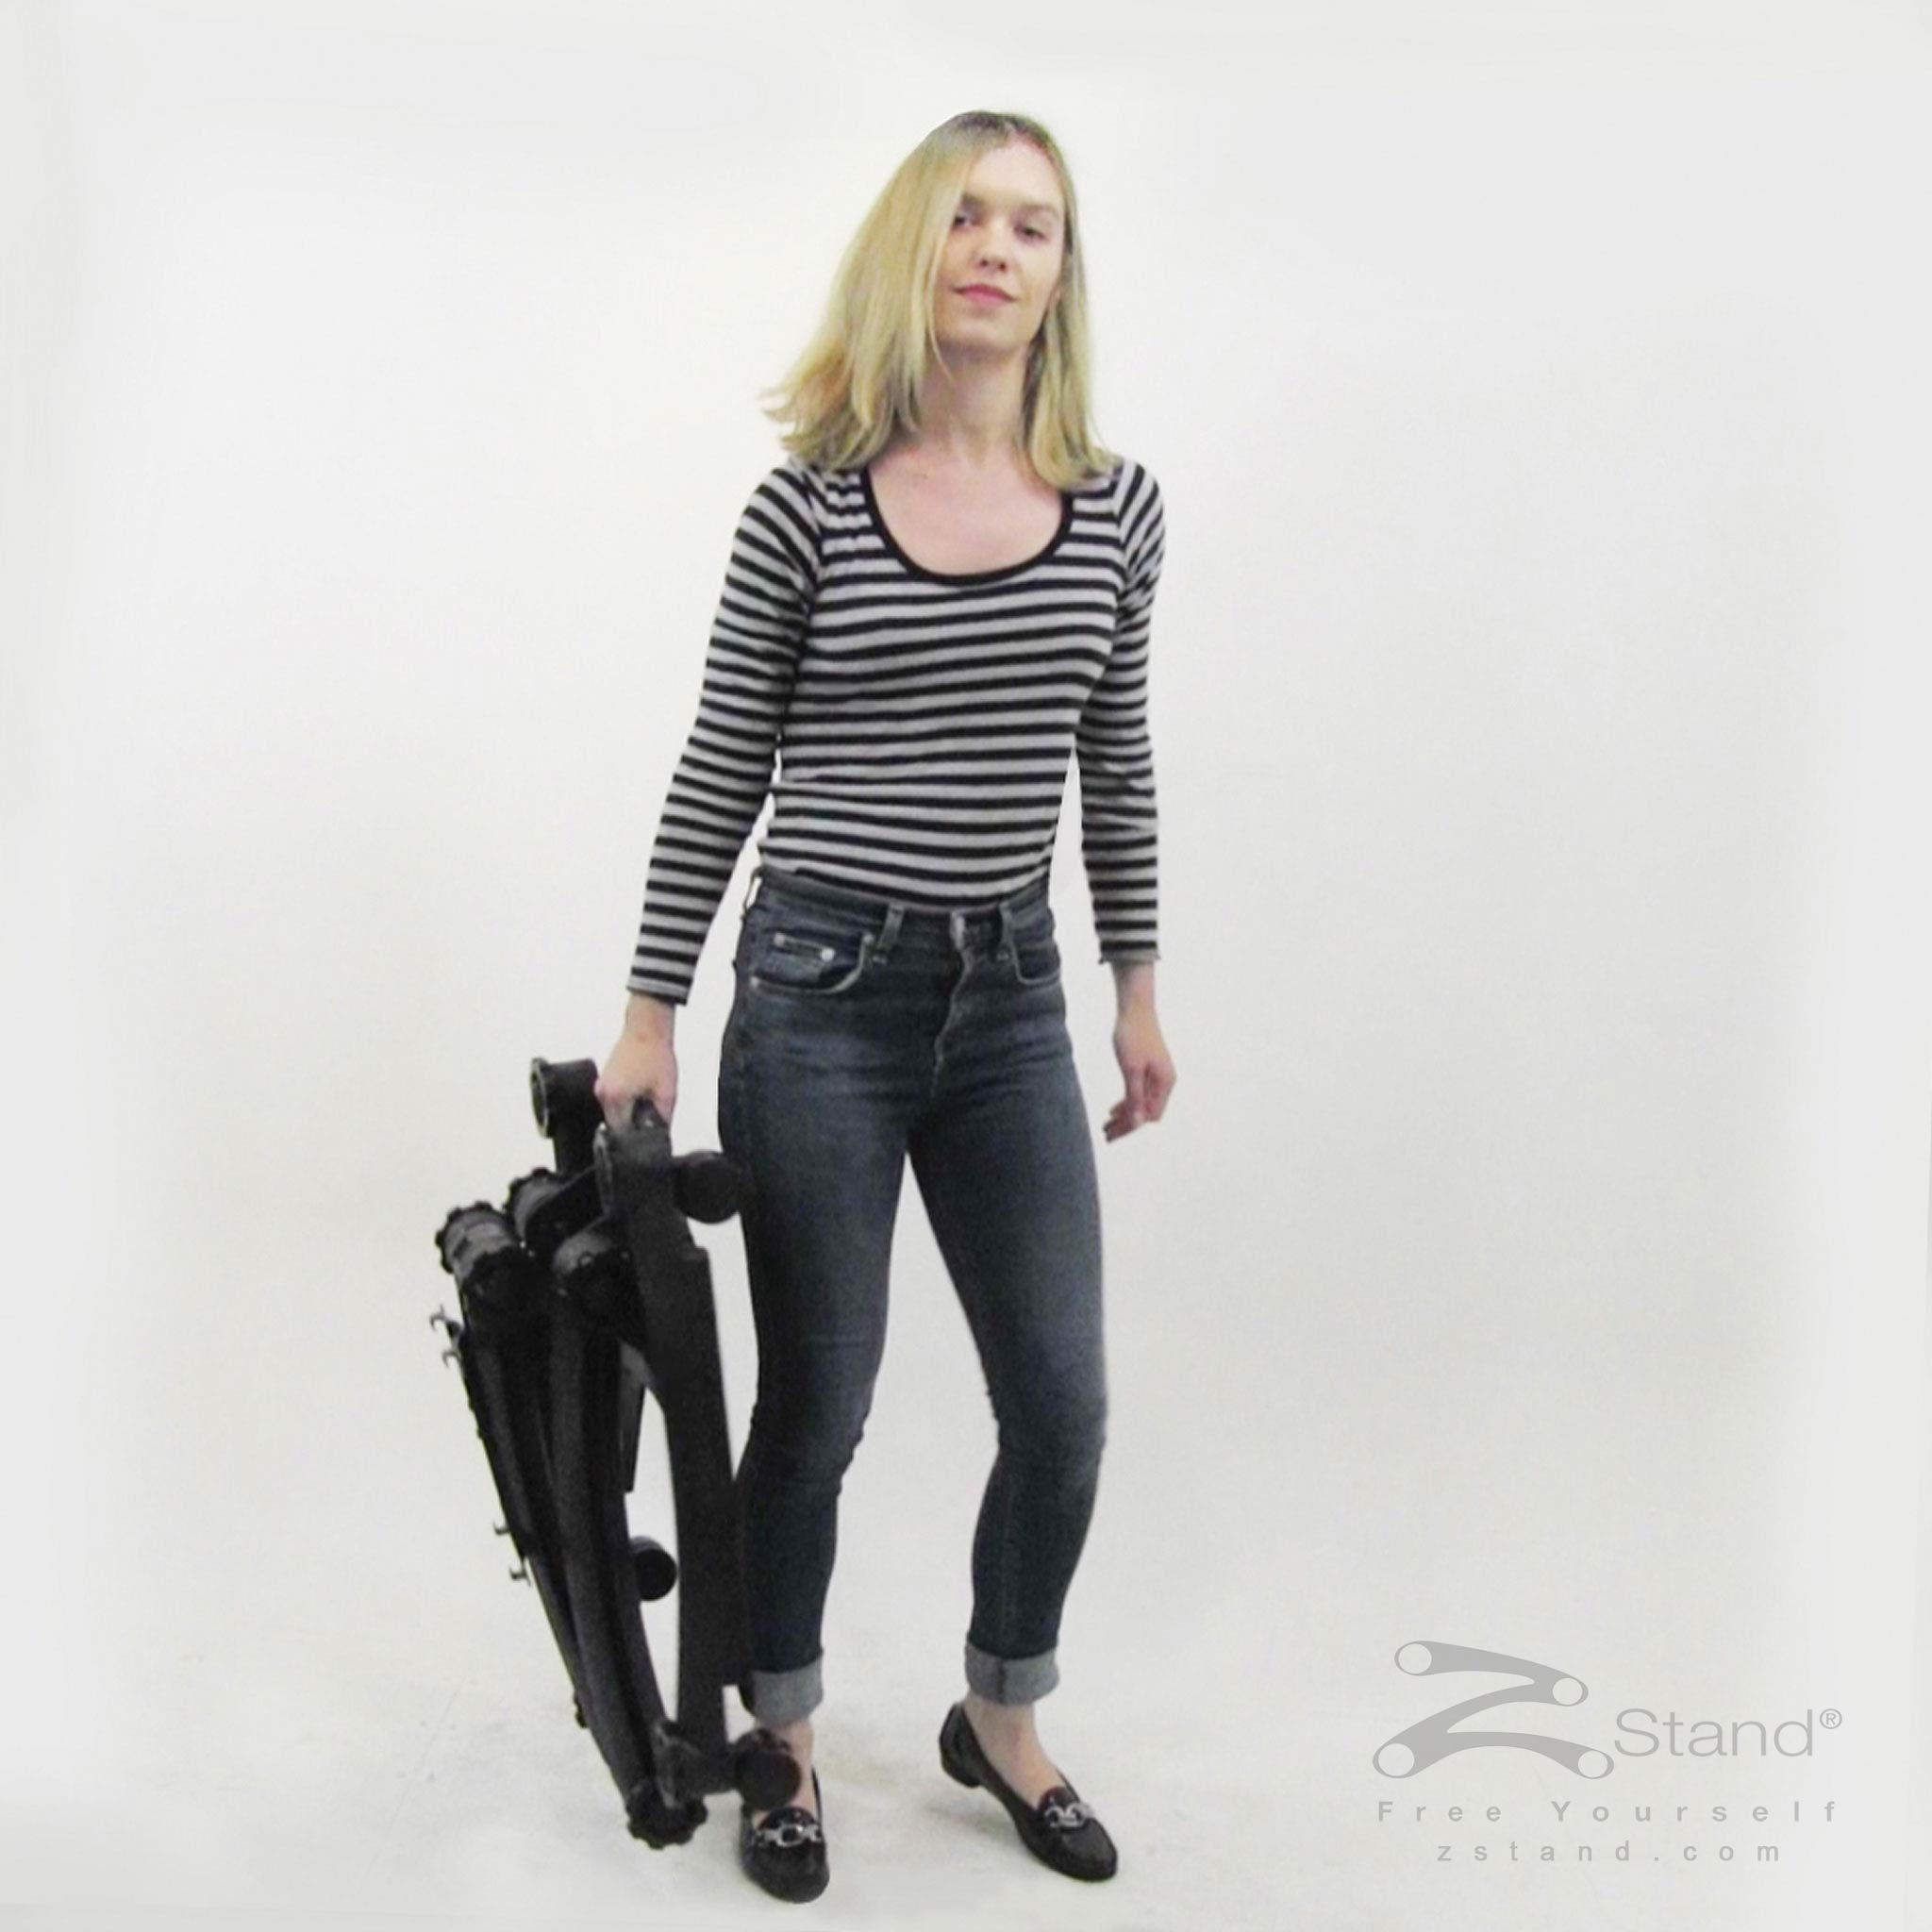 Image of a woman carrying the ZStand Sportster to transport it somewhere else easily.